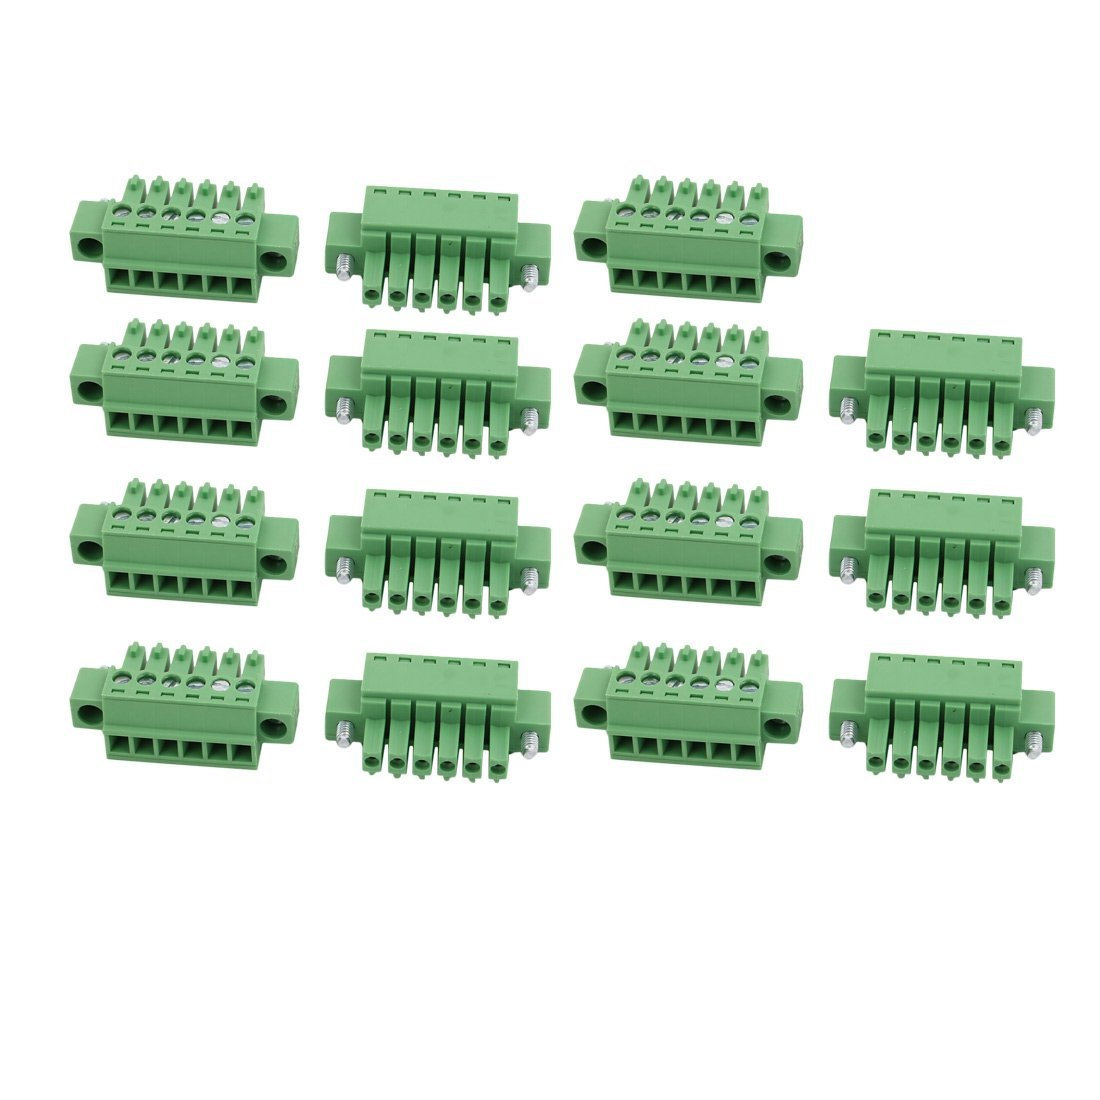 uxcell 15Pcs LC1M AC300V 8A 3.5mm Pitch 6P PCB Mount Terminal Block Wire Connector